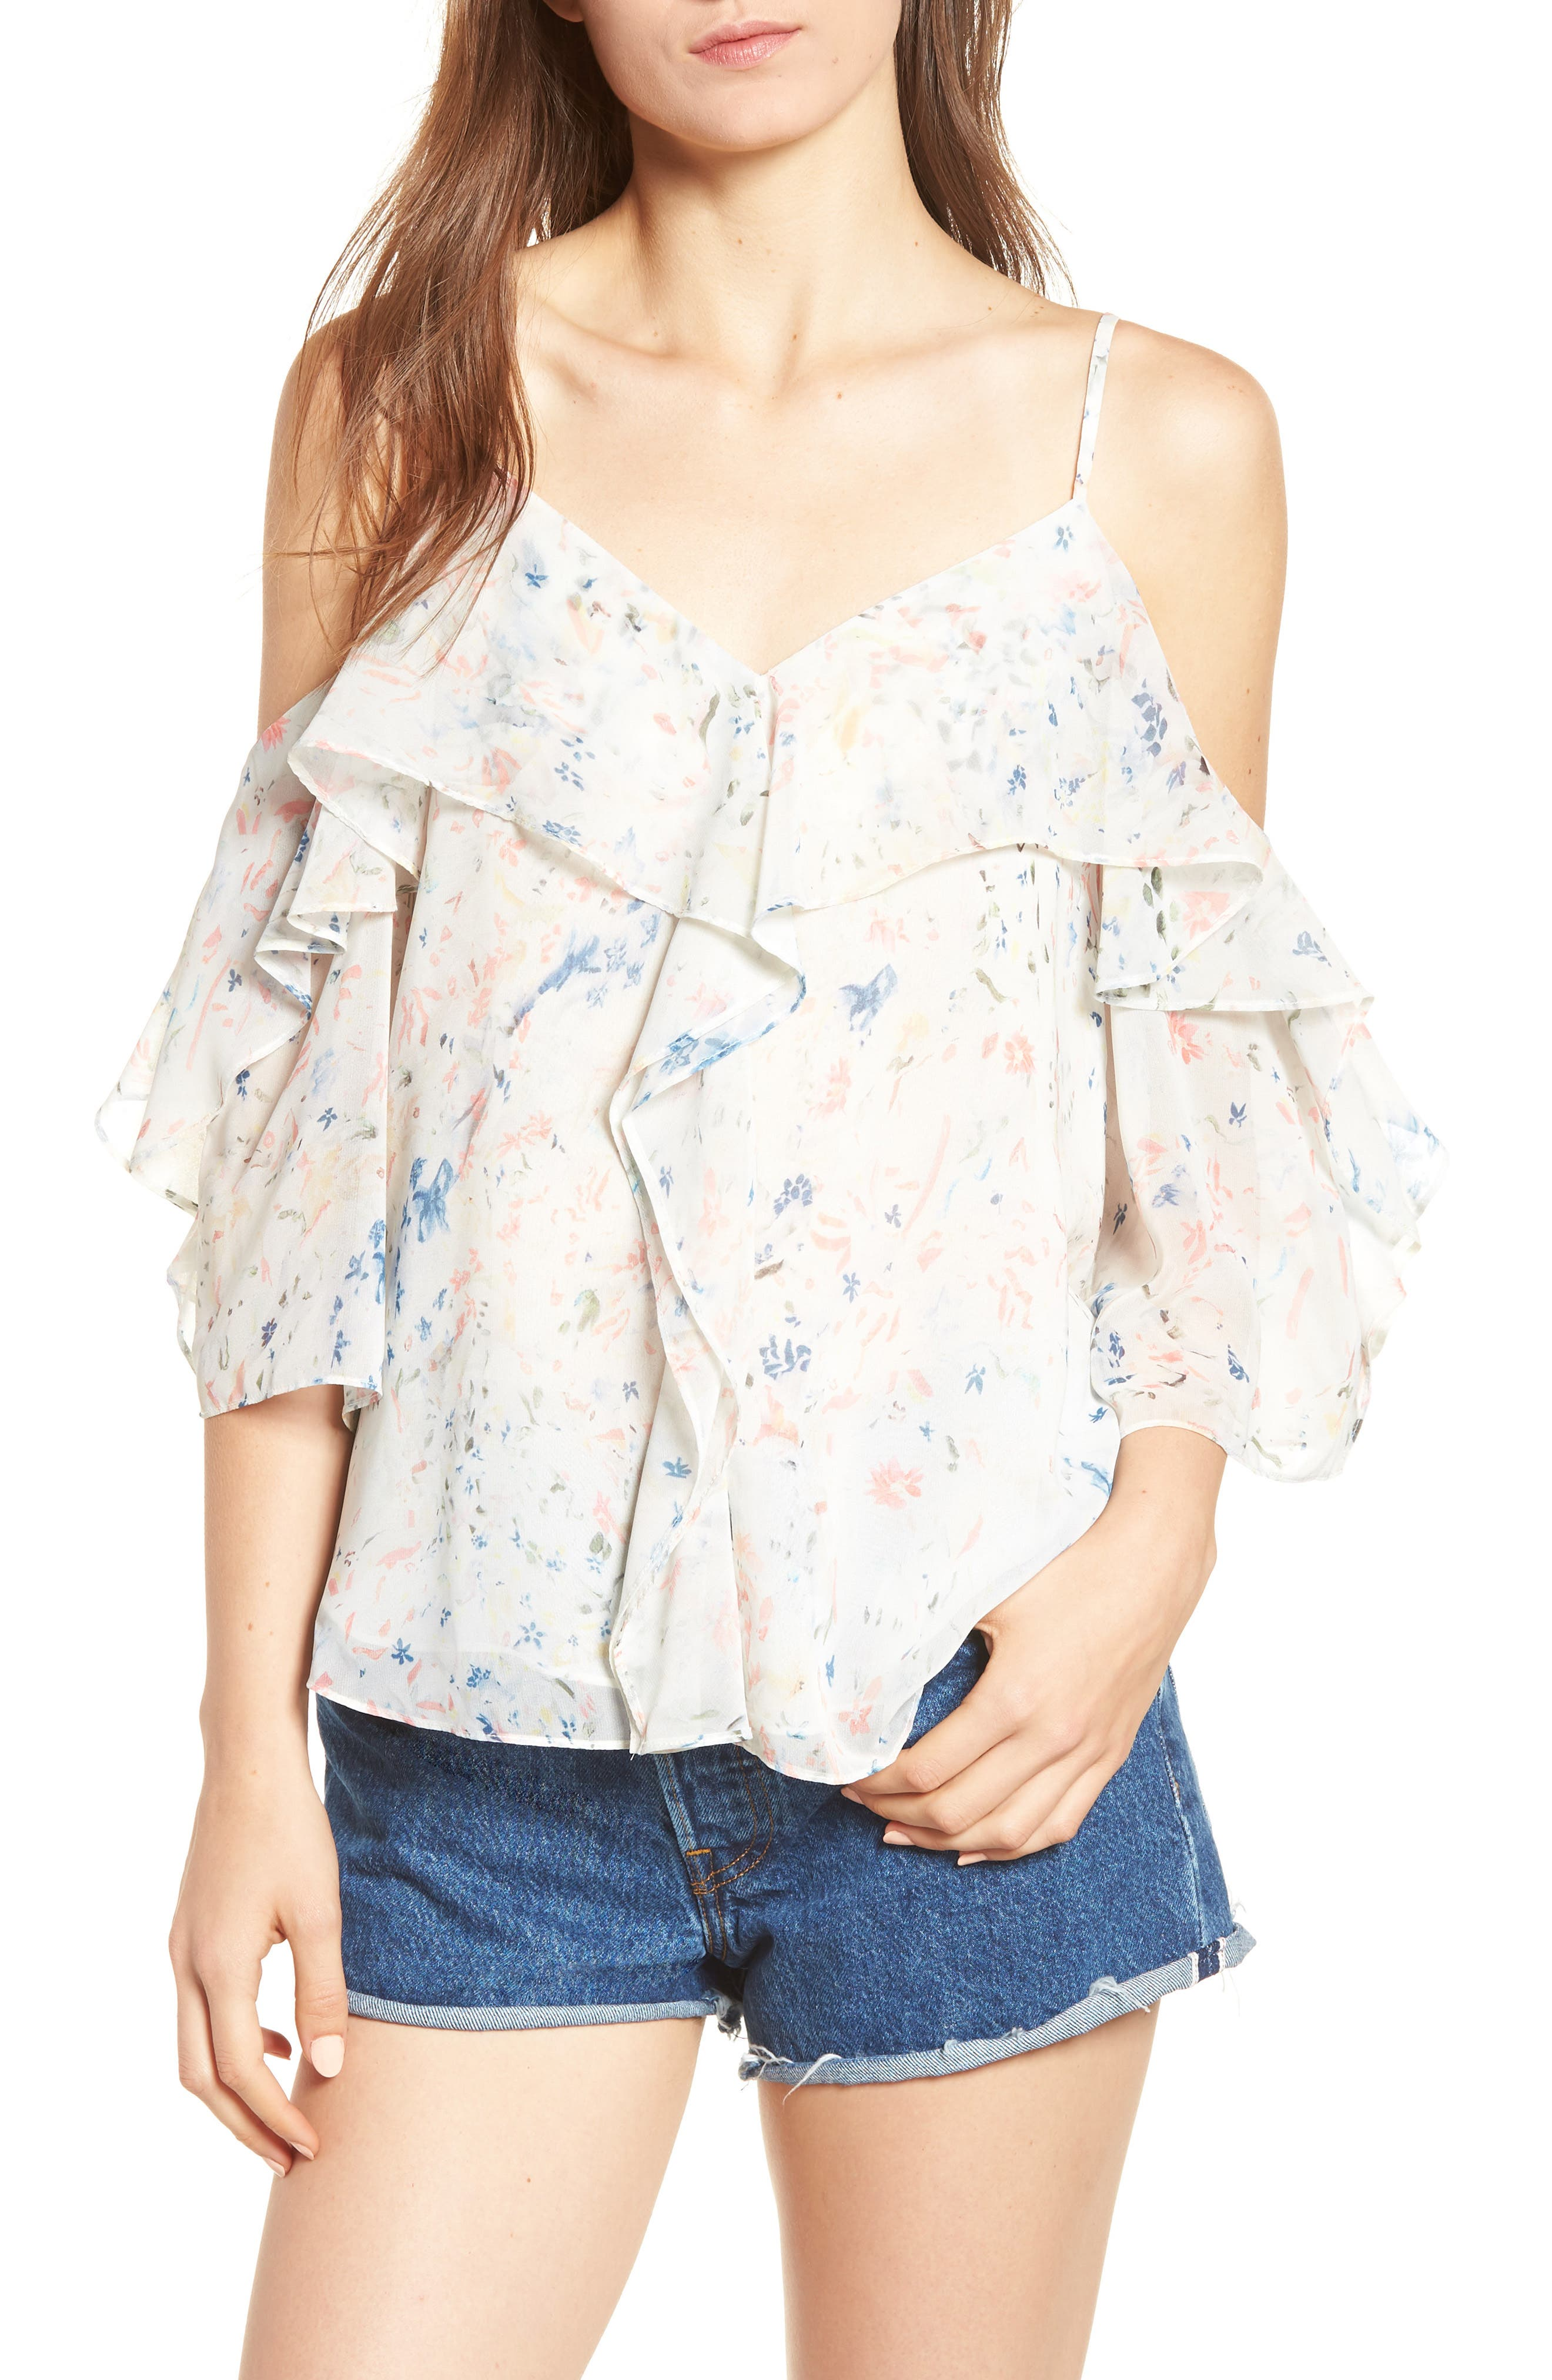 Jasmine Juni Top,                             Main thumbnail 1, color,                             Chalk White